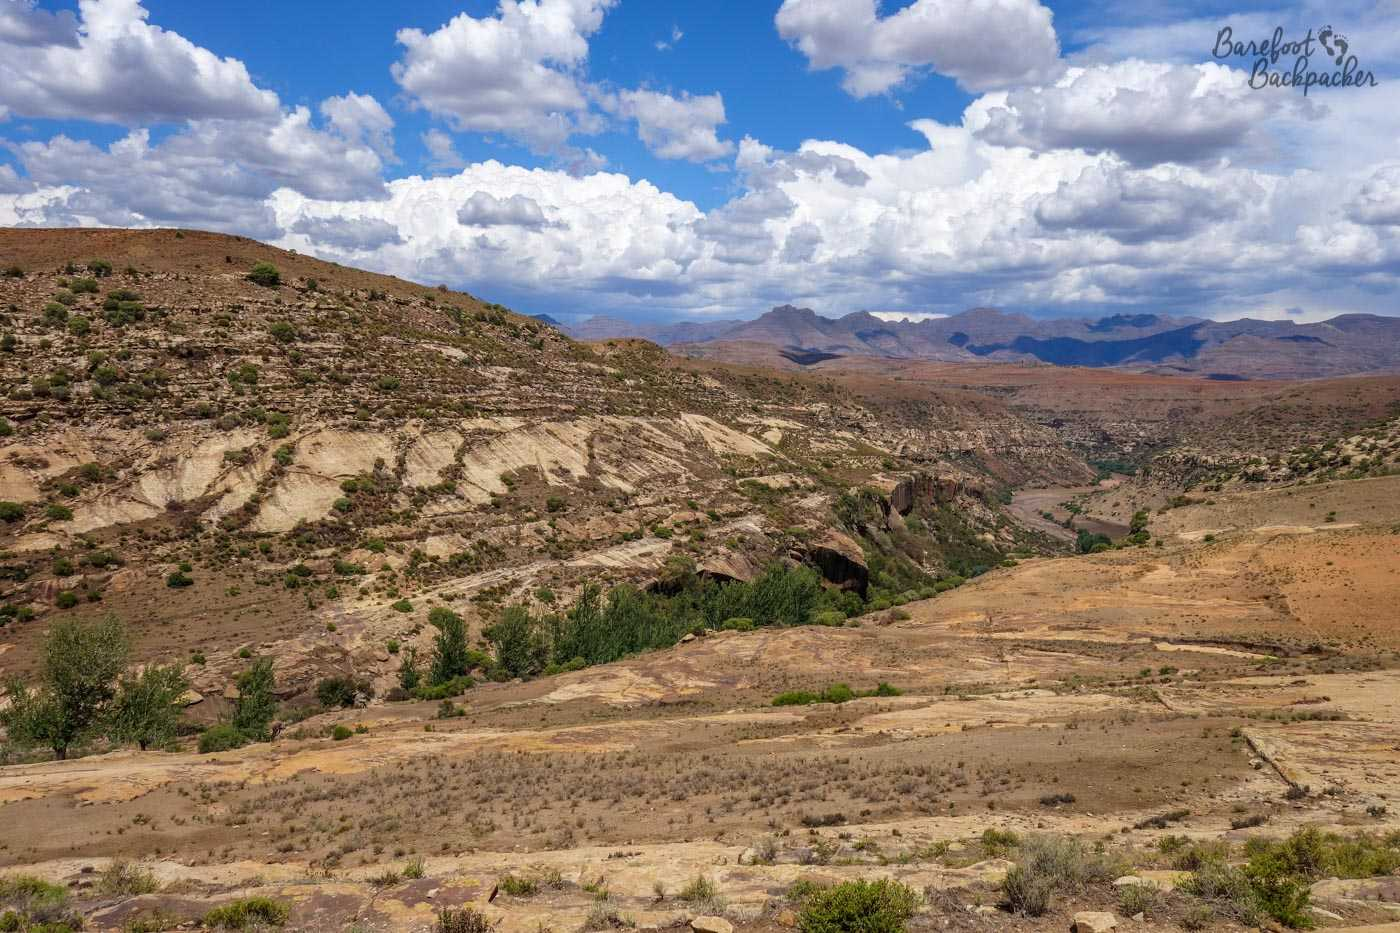 Hiking through the mountains in Lesotho.